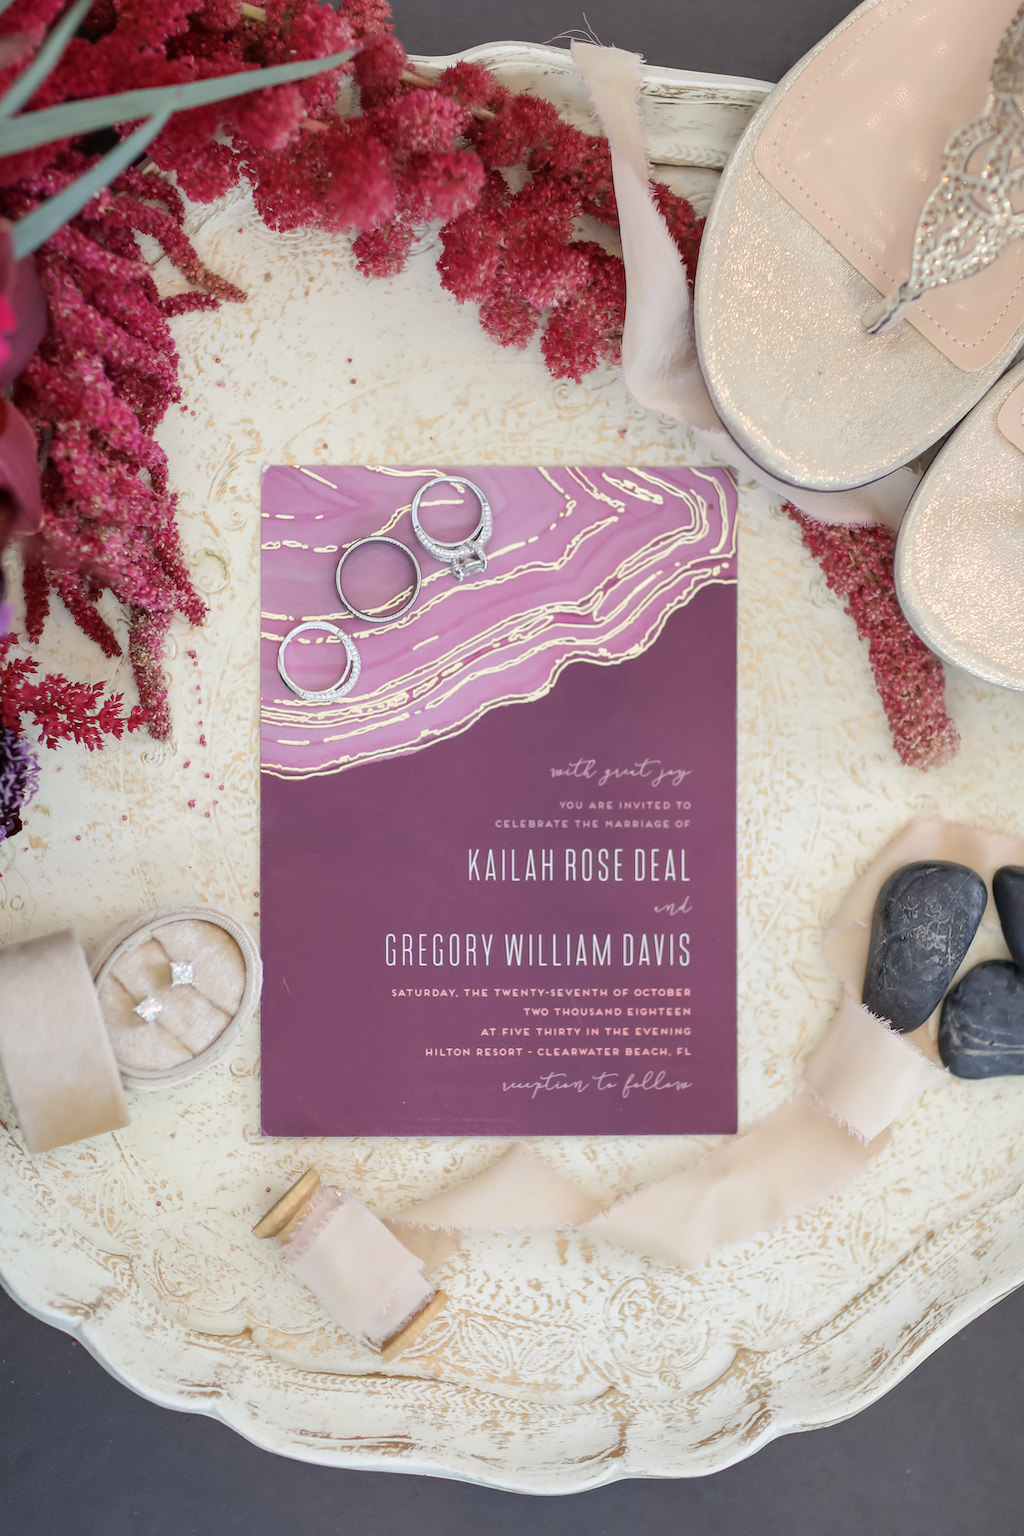 Jewel Tone Purple, Plum with Gold Foil Accent and Agate Stone Inspired Wedding Invitation | Tampa Bay Wedding Photographer Lifelong Photography Studios